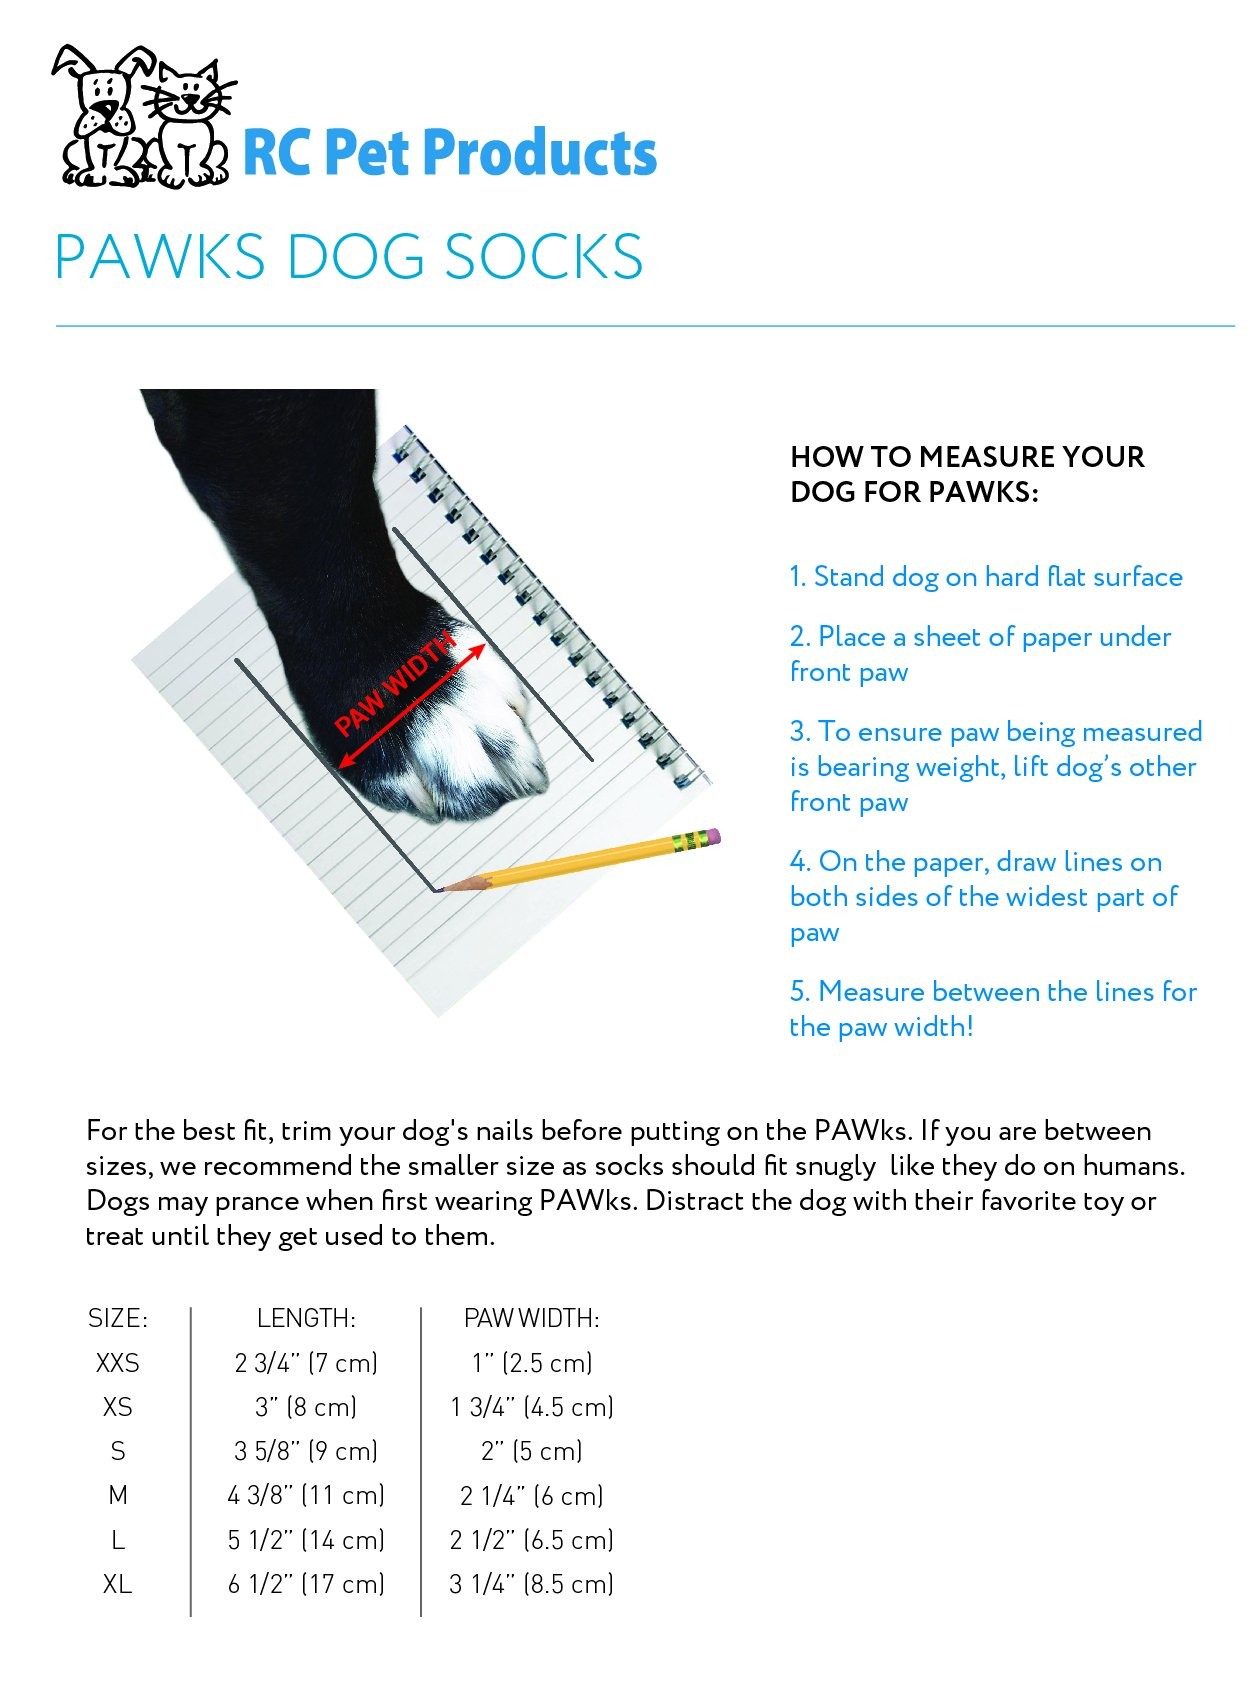 RC Pet Products PAWks Dog Socks, Large, Purple Sneakers